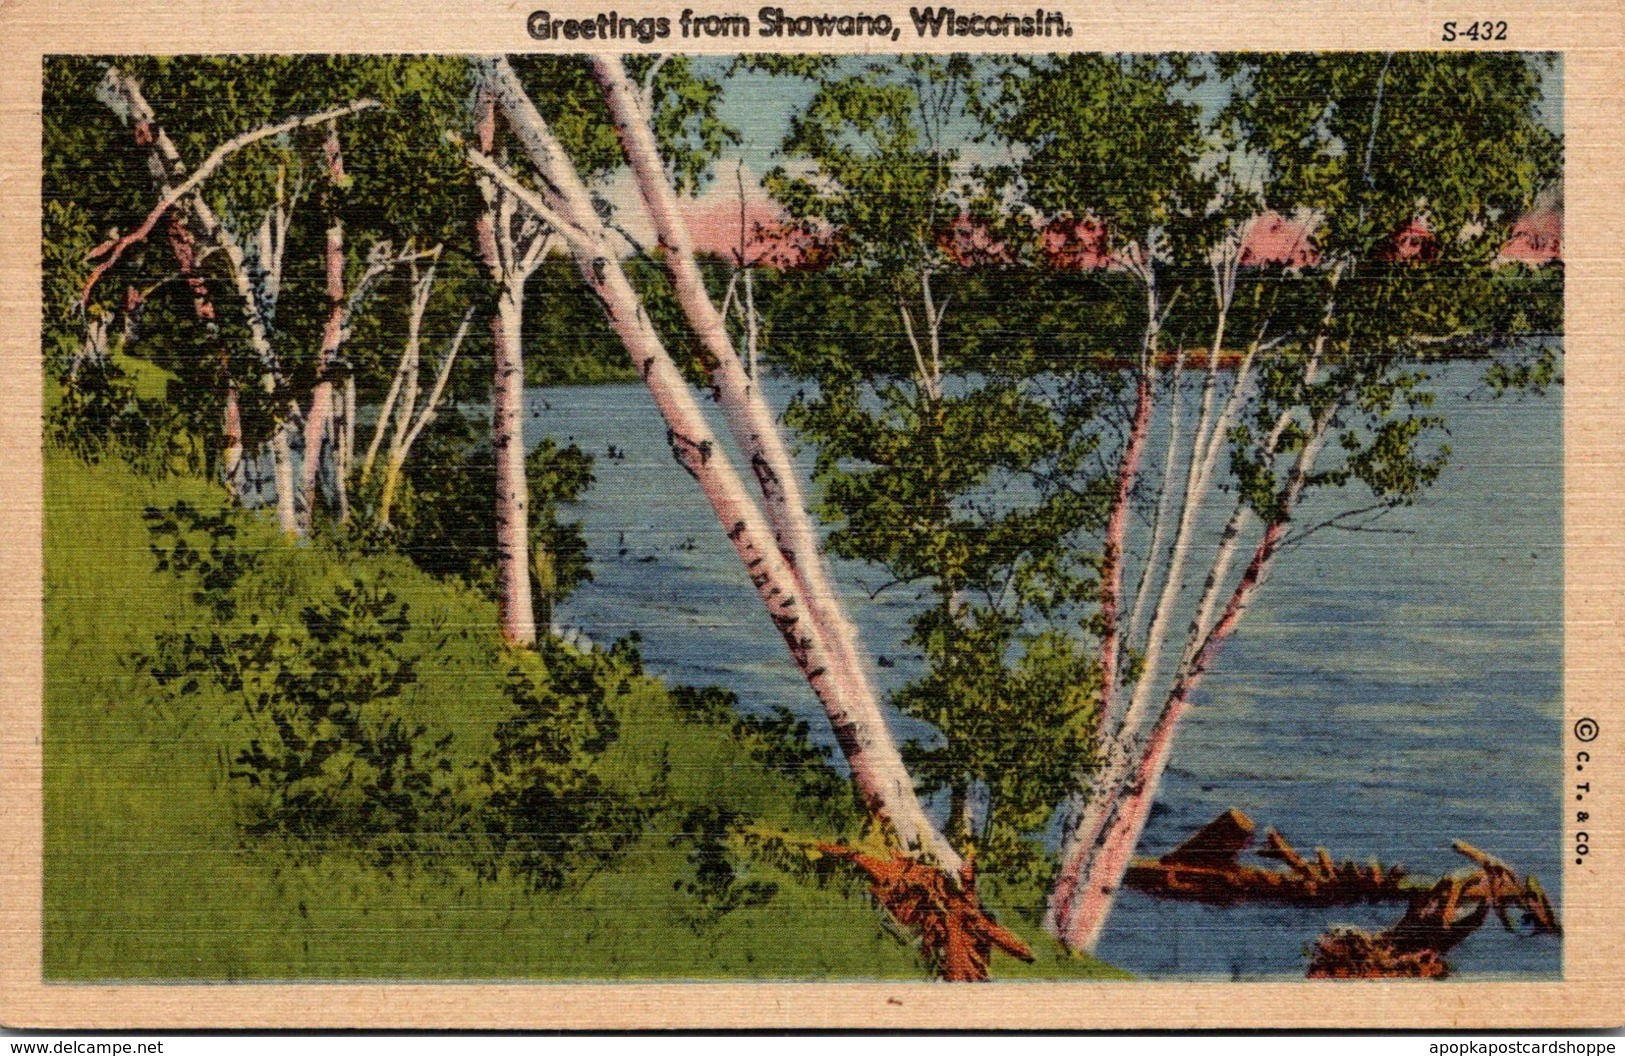 Wisconsin Greetings From Shawano Curteich